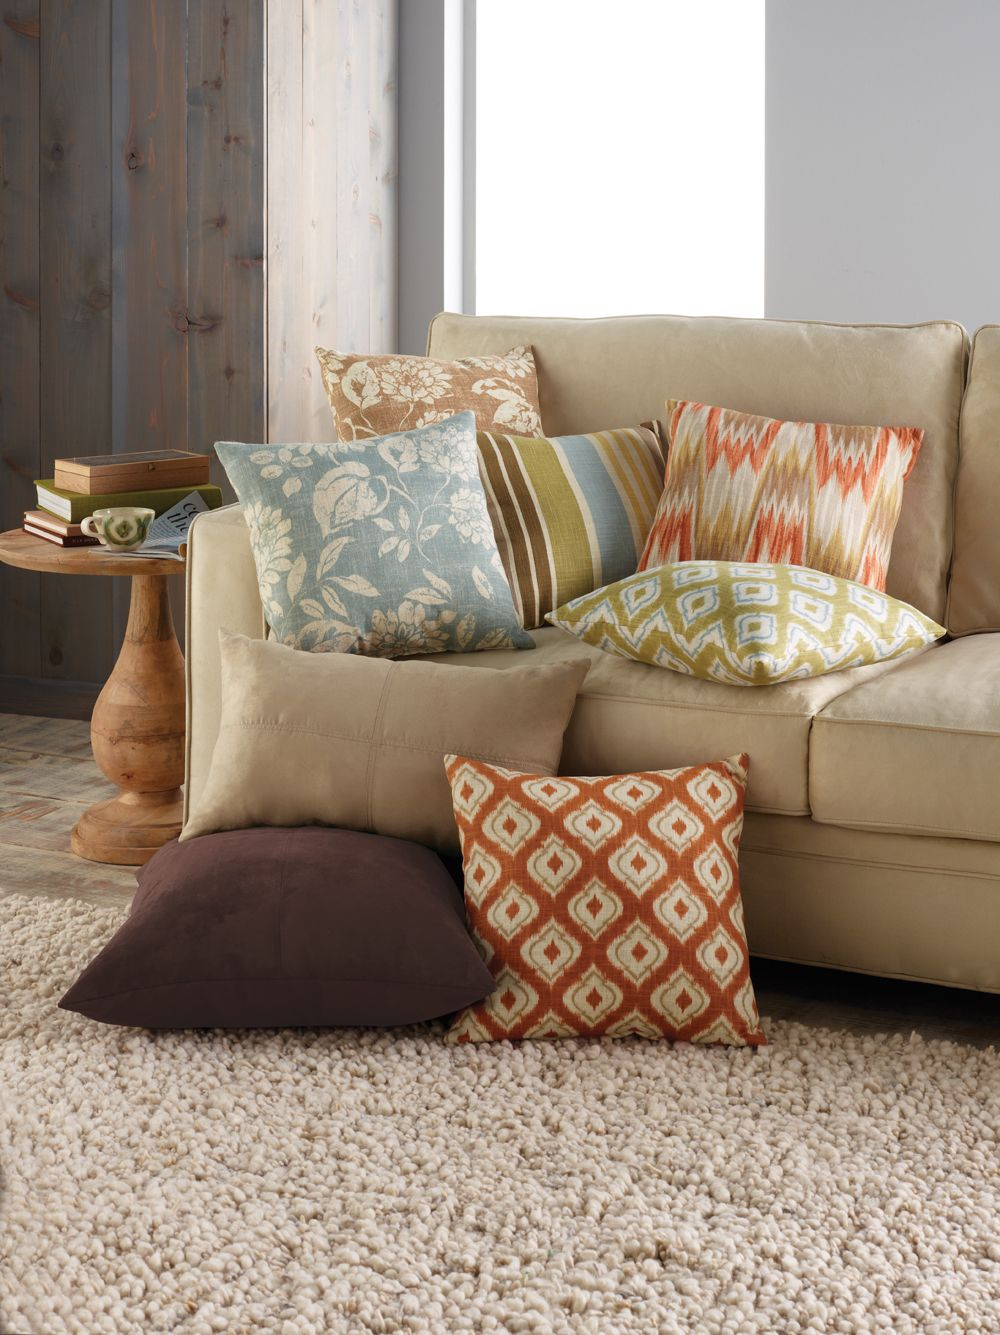 Kohls Decorative Pillows Best Throw Pillows Galore#homedecor #kohls  Home Style  Pinterest Design Decoration